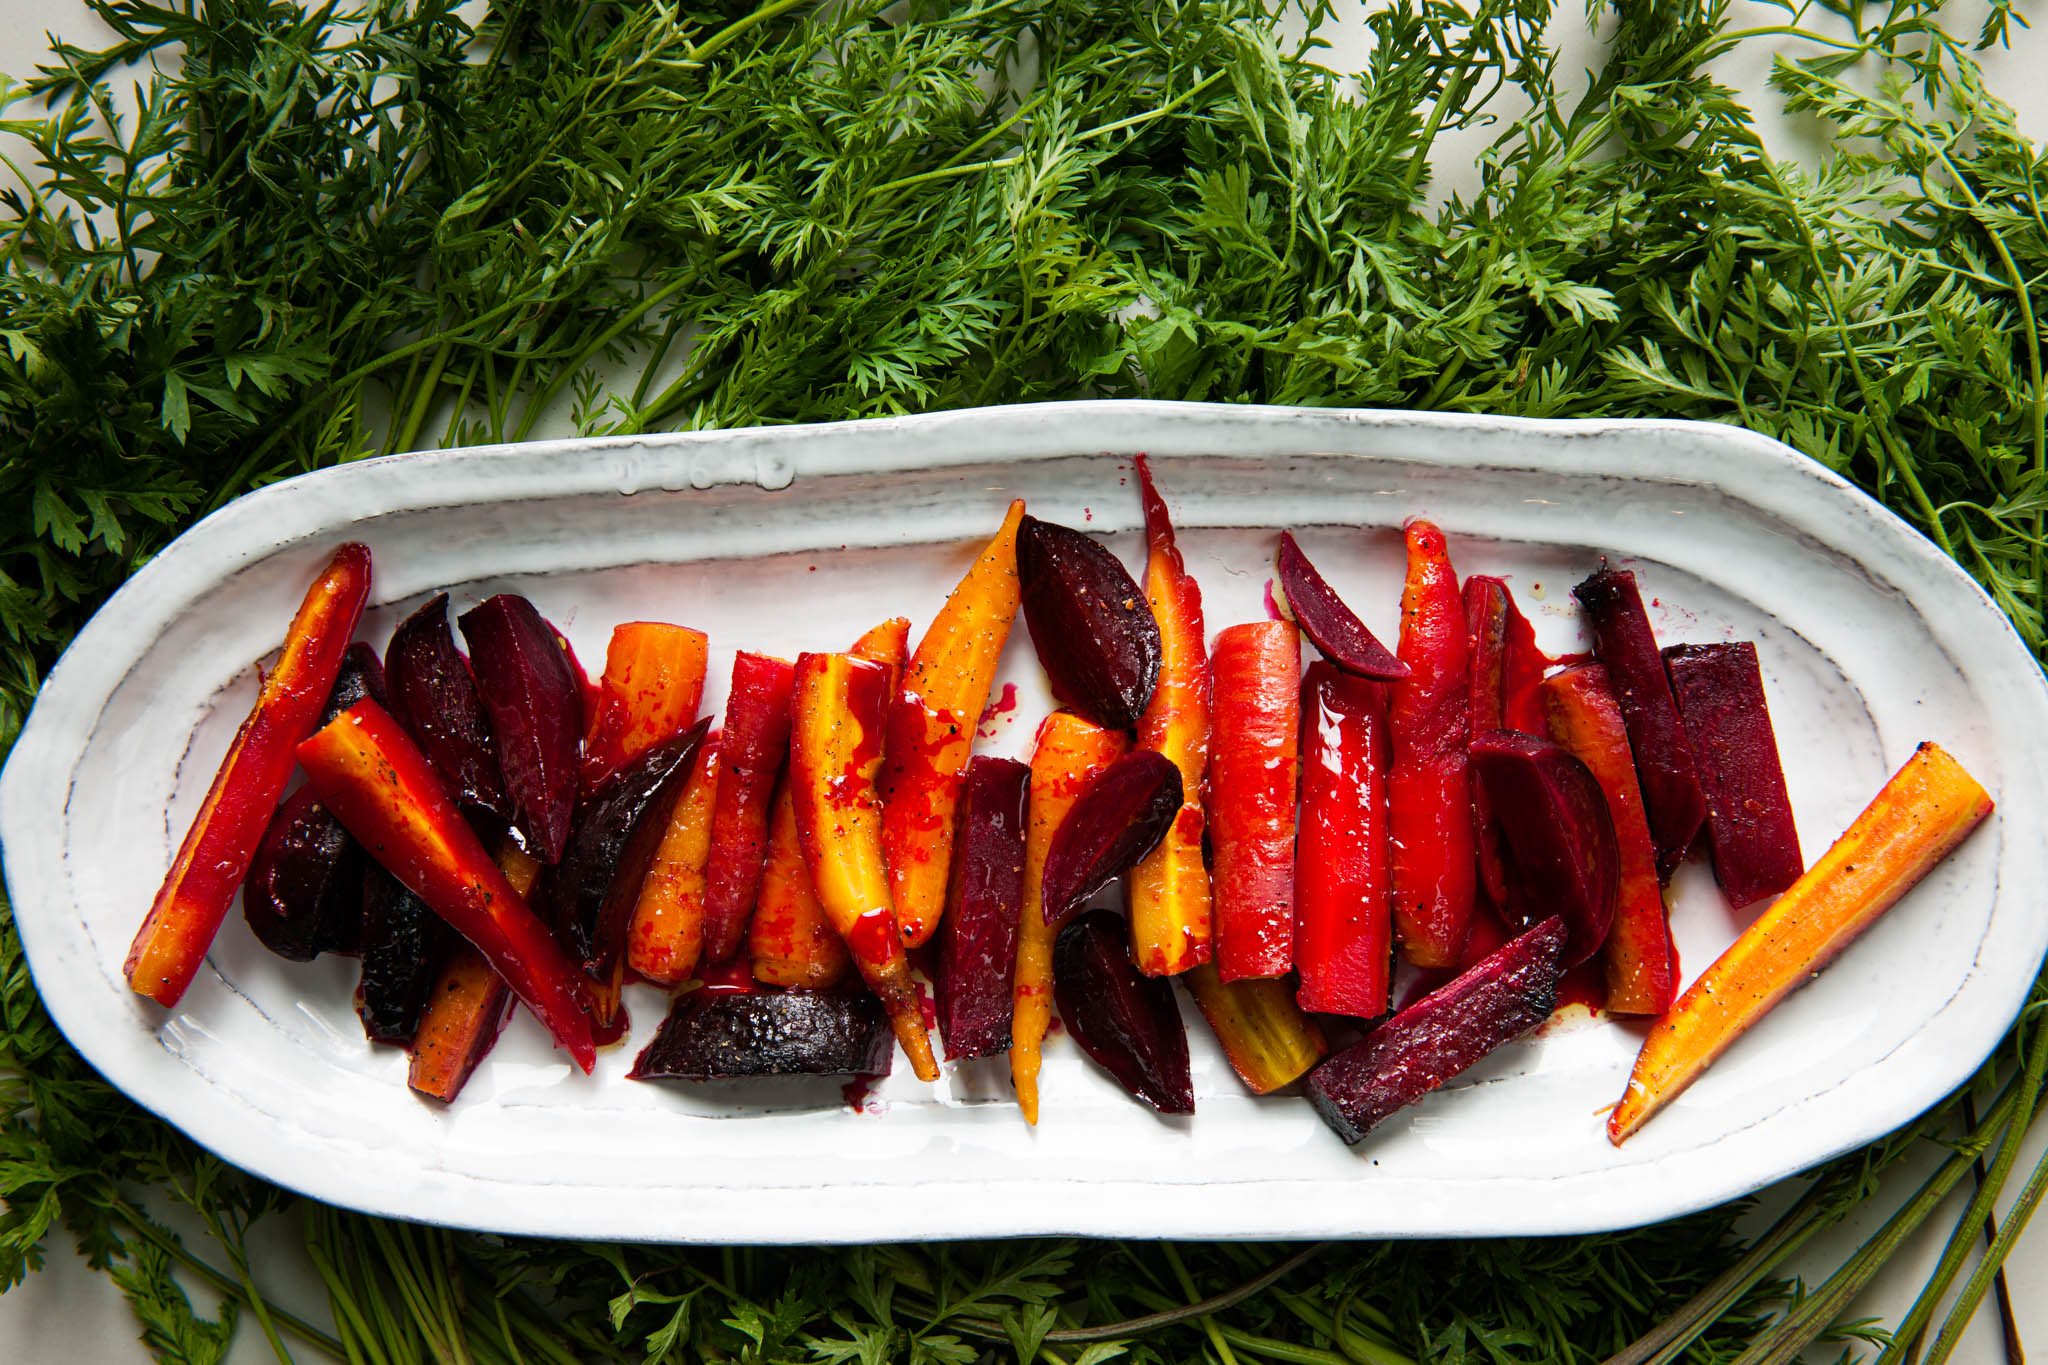 Honey Orange Roasted Beets and Carrots plated image